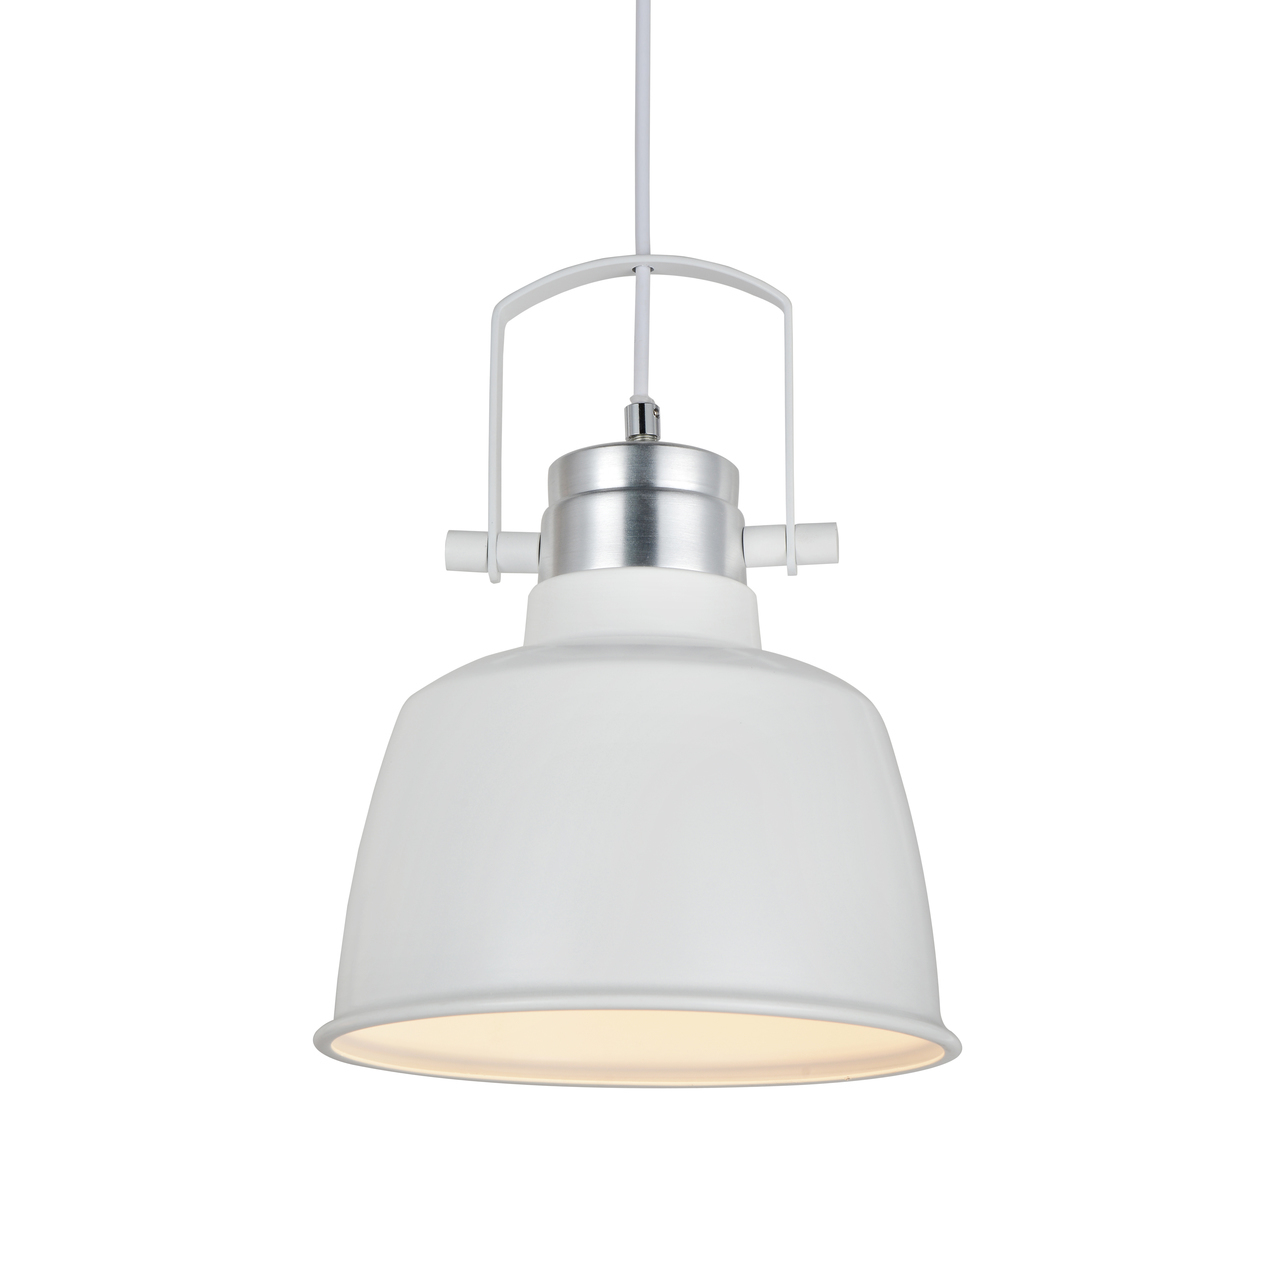 Cocoweb Ceiling Light Fixtures